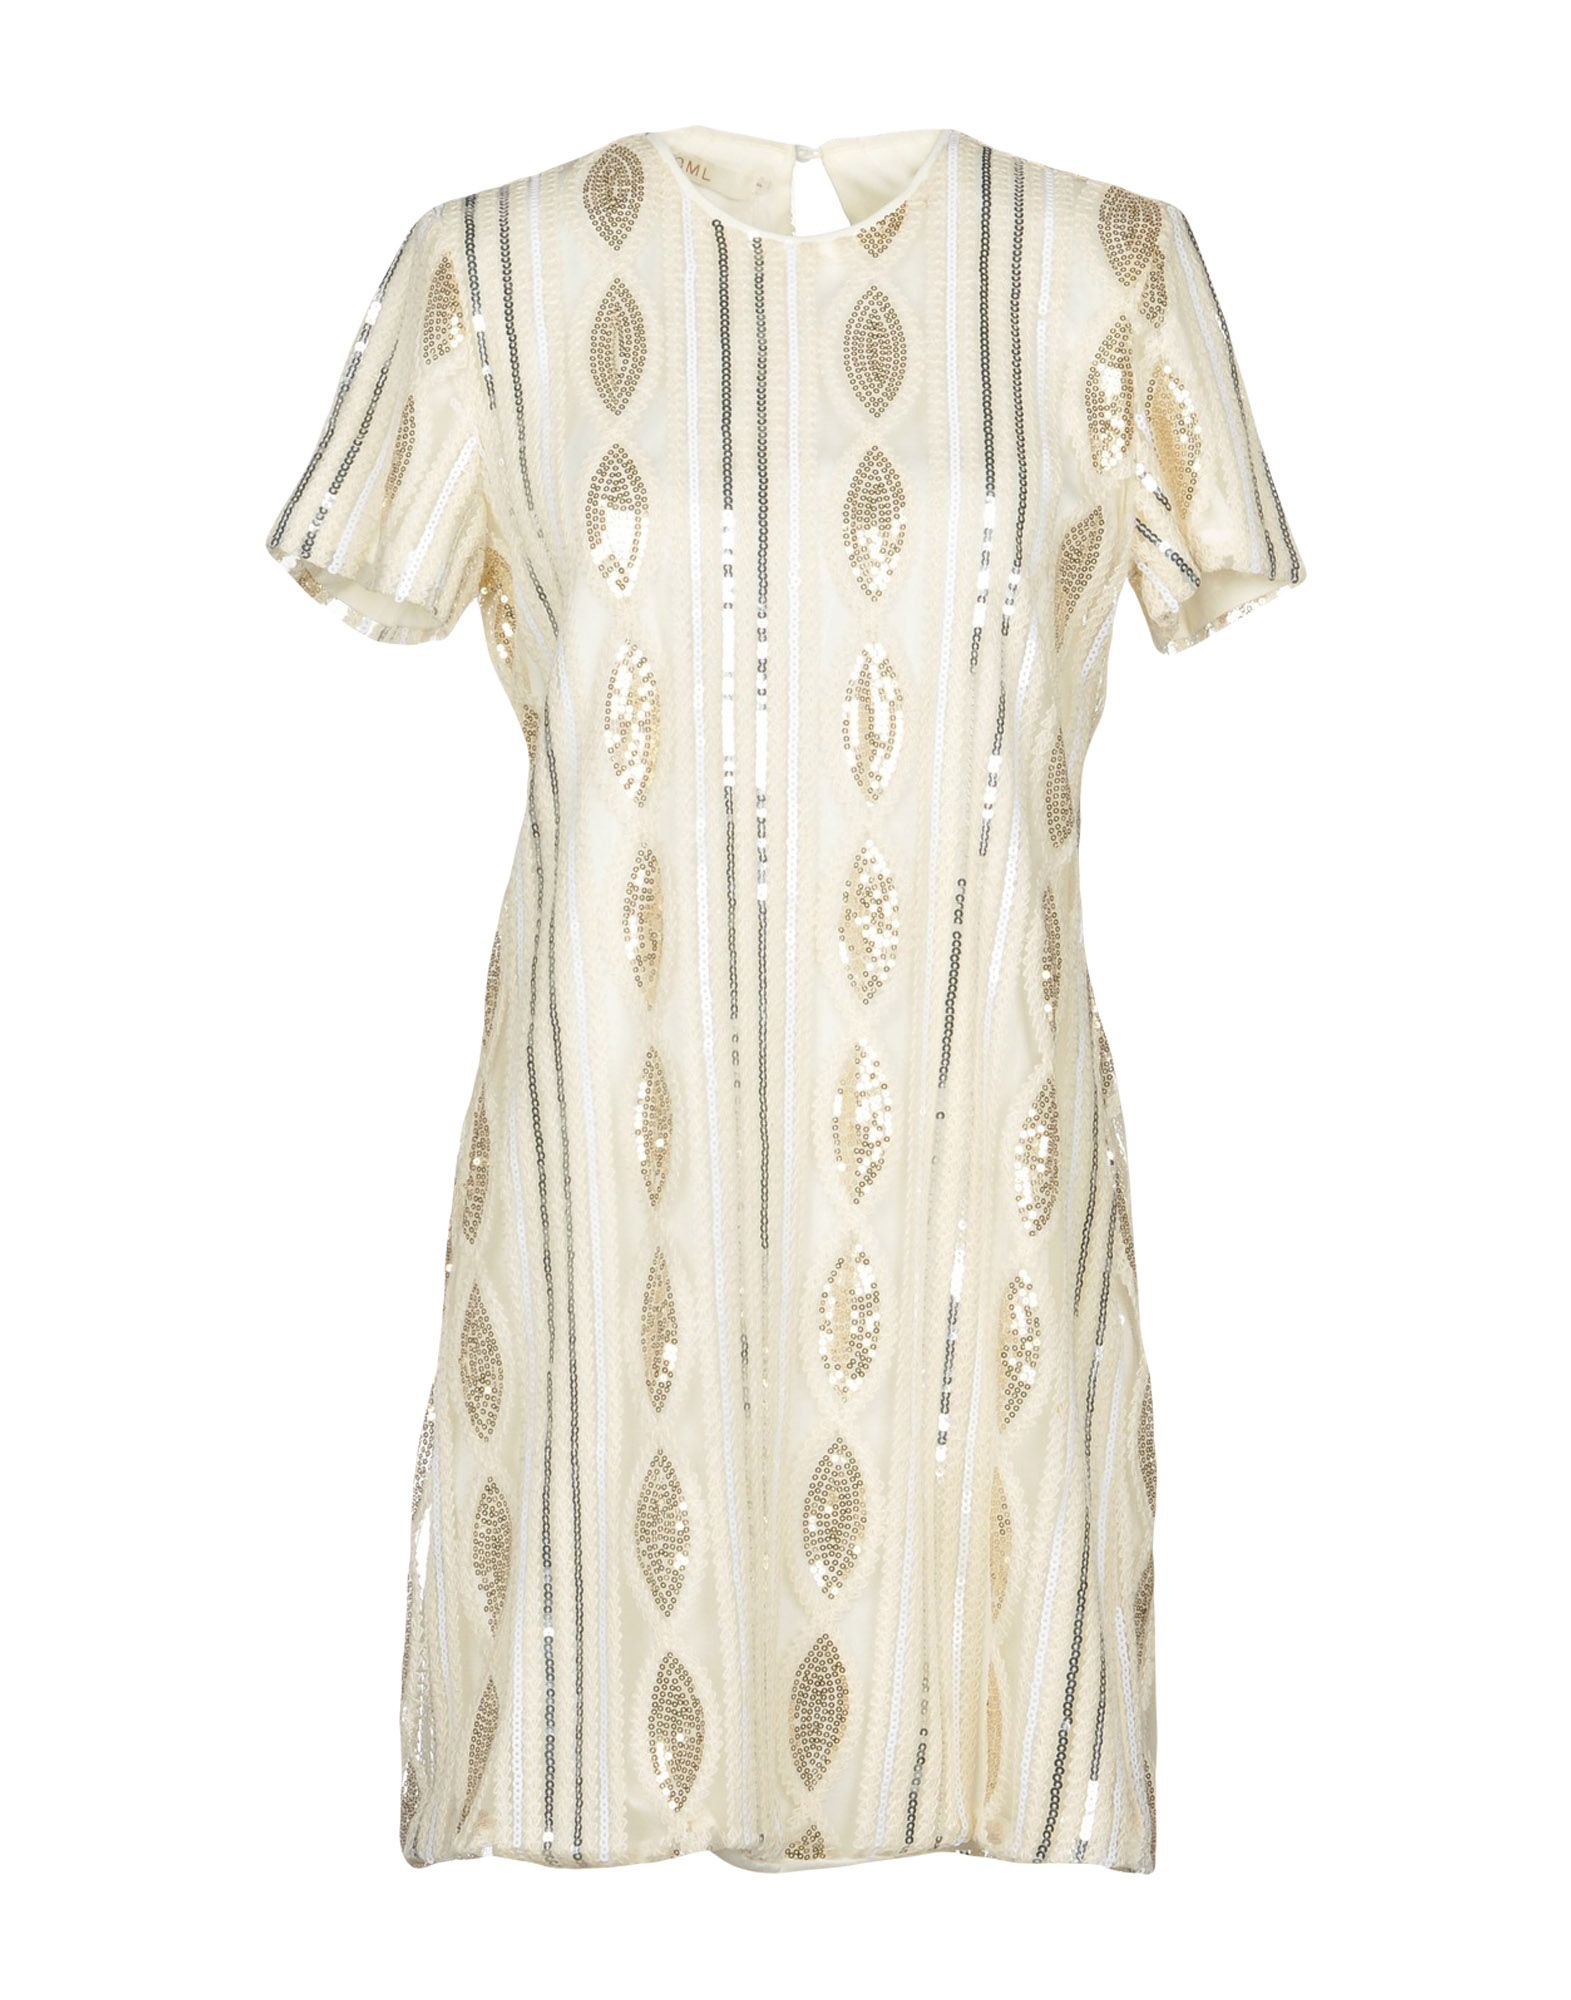 OH MY LOVE Short Dress in Ivory